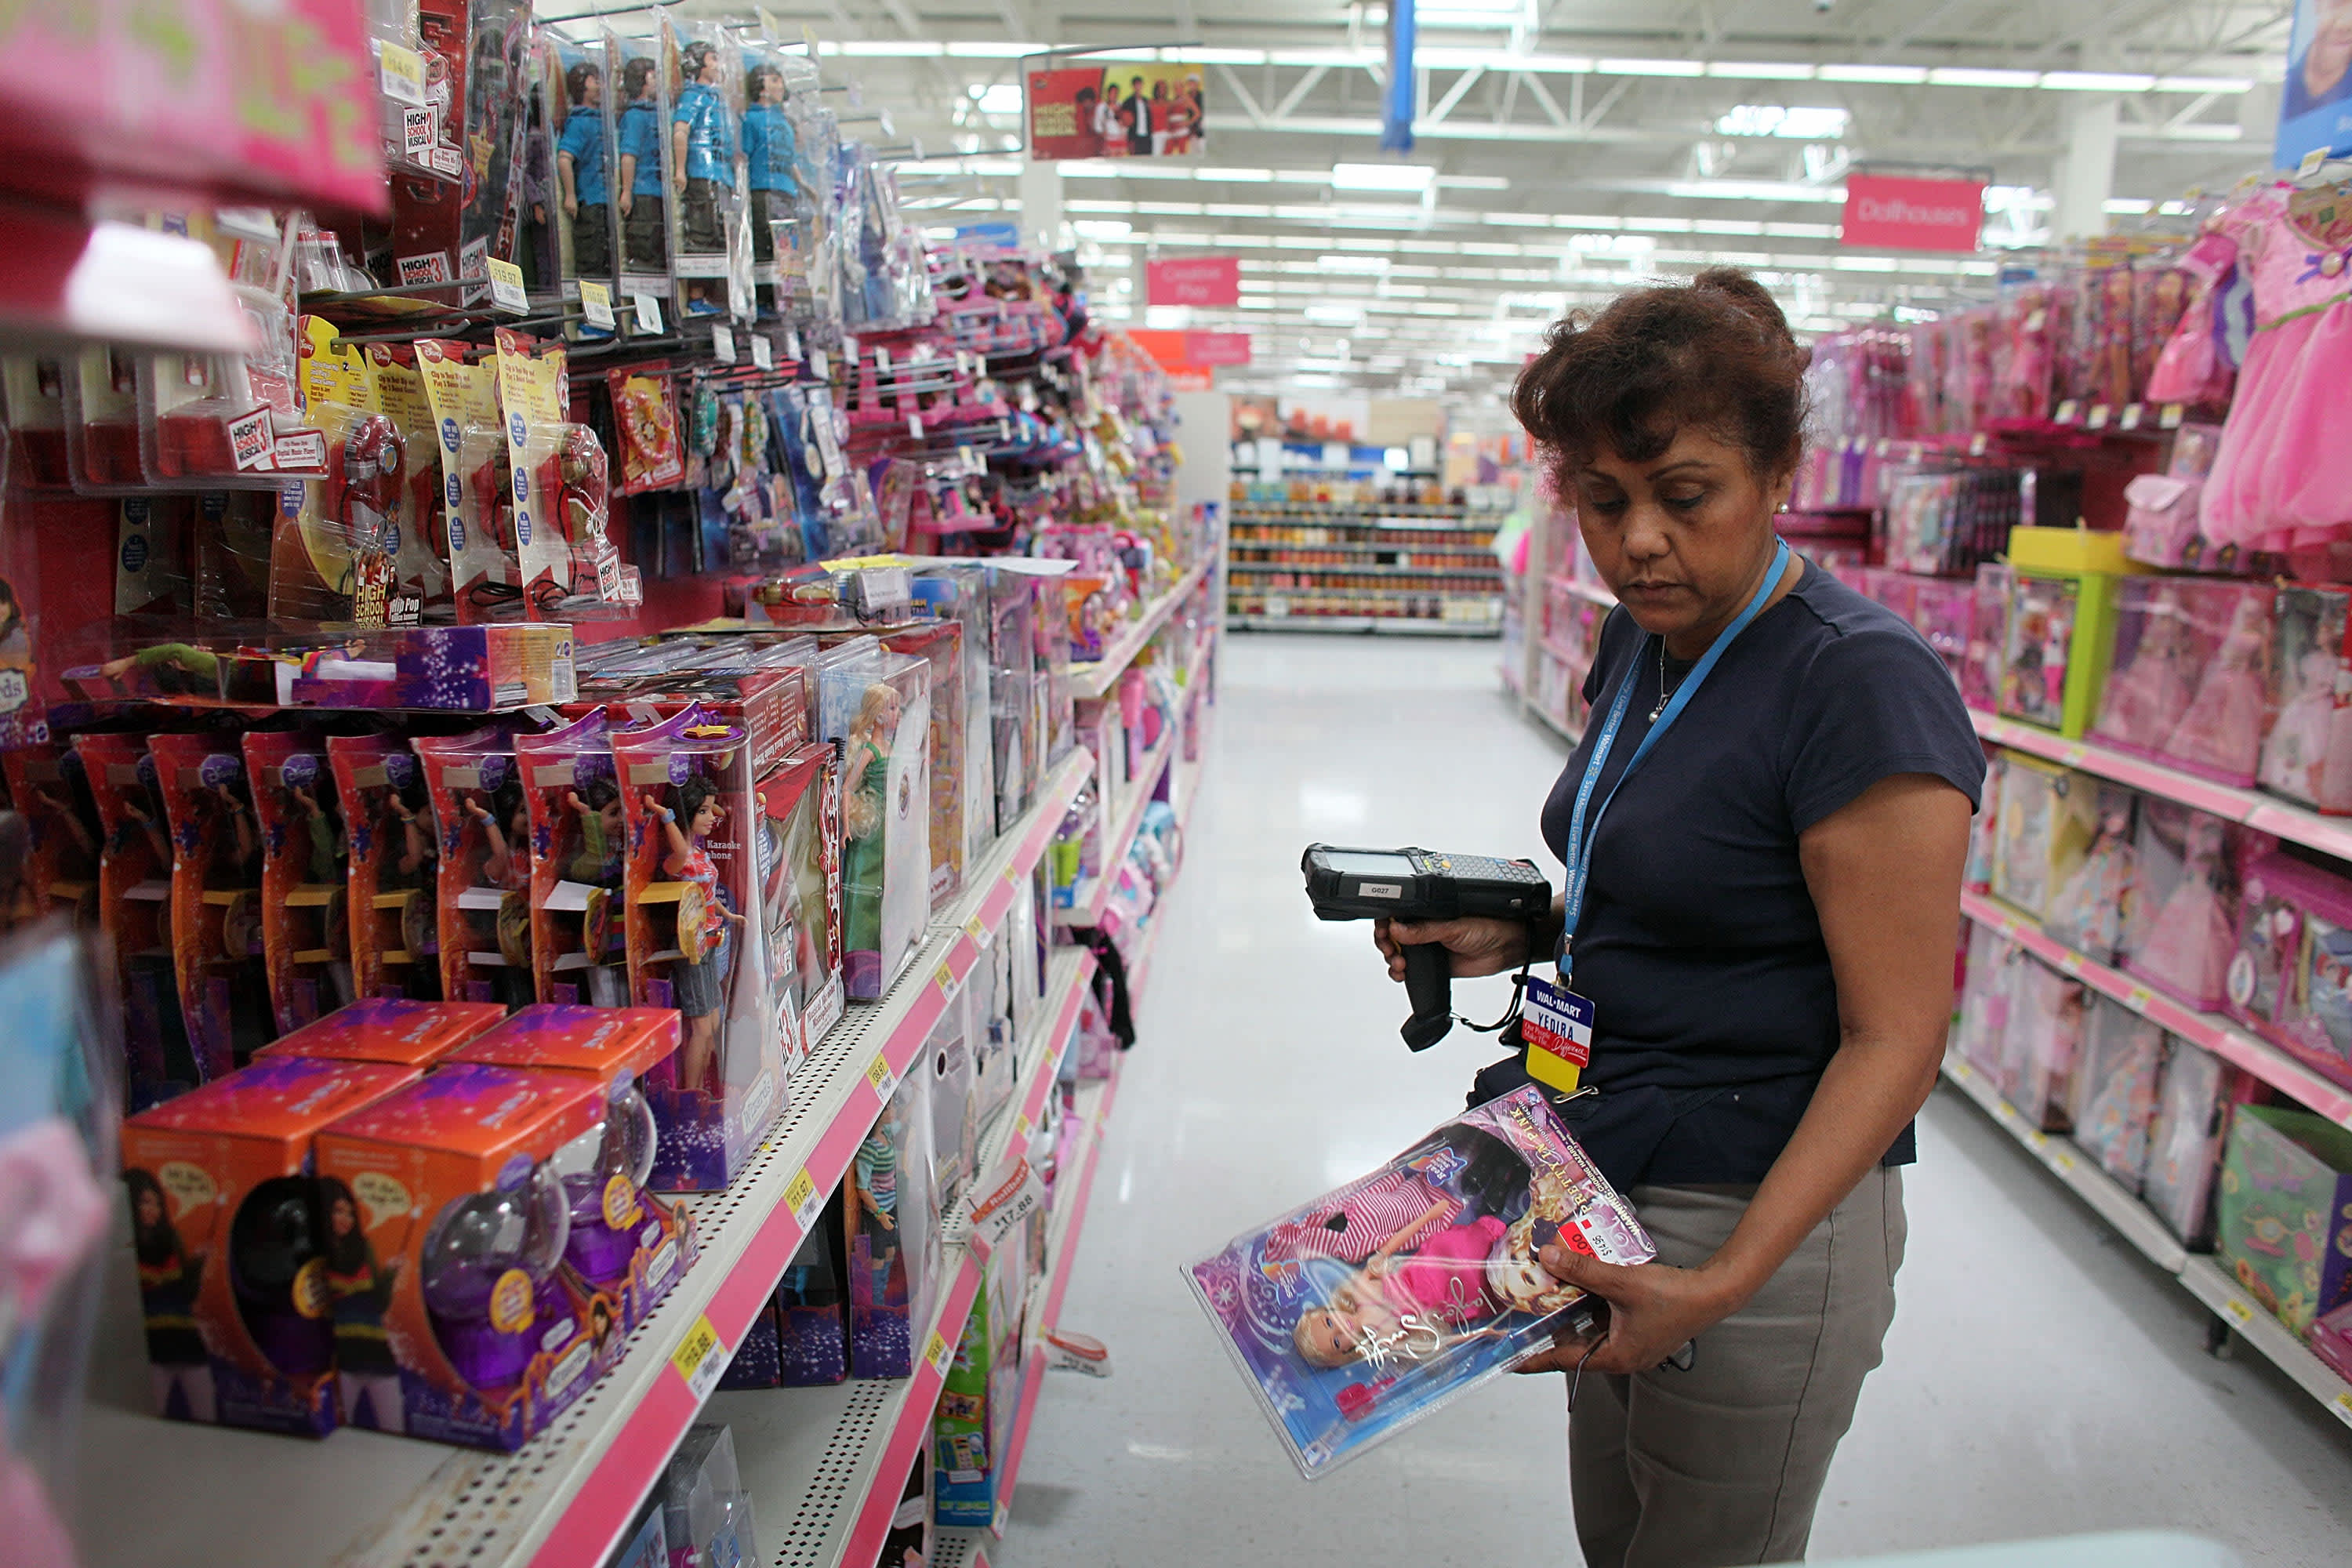 A Wal-Mart employee restocks the shelves in the toy department in Pompano Beach, Florida.